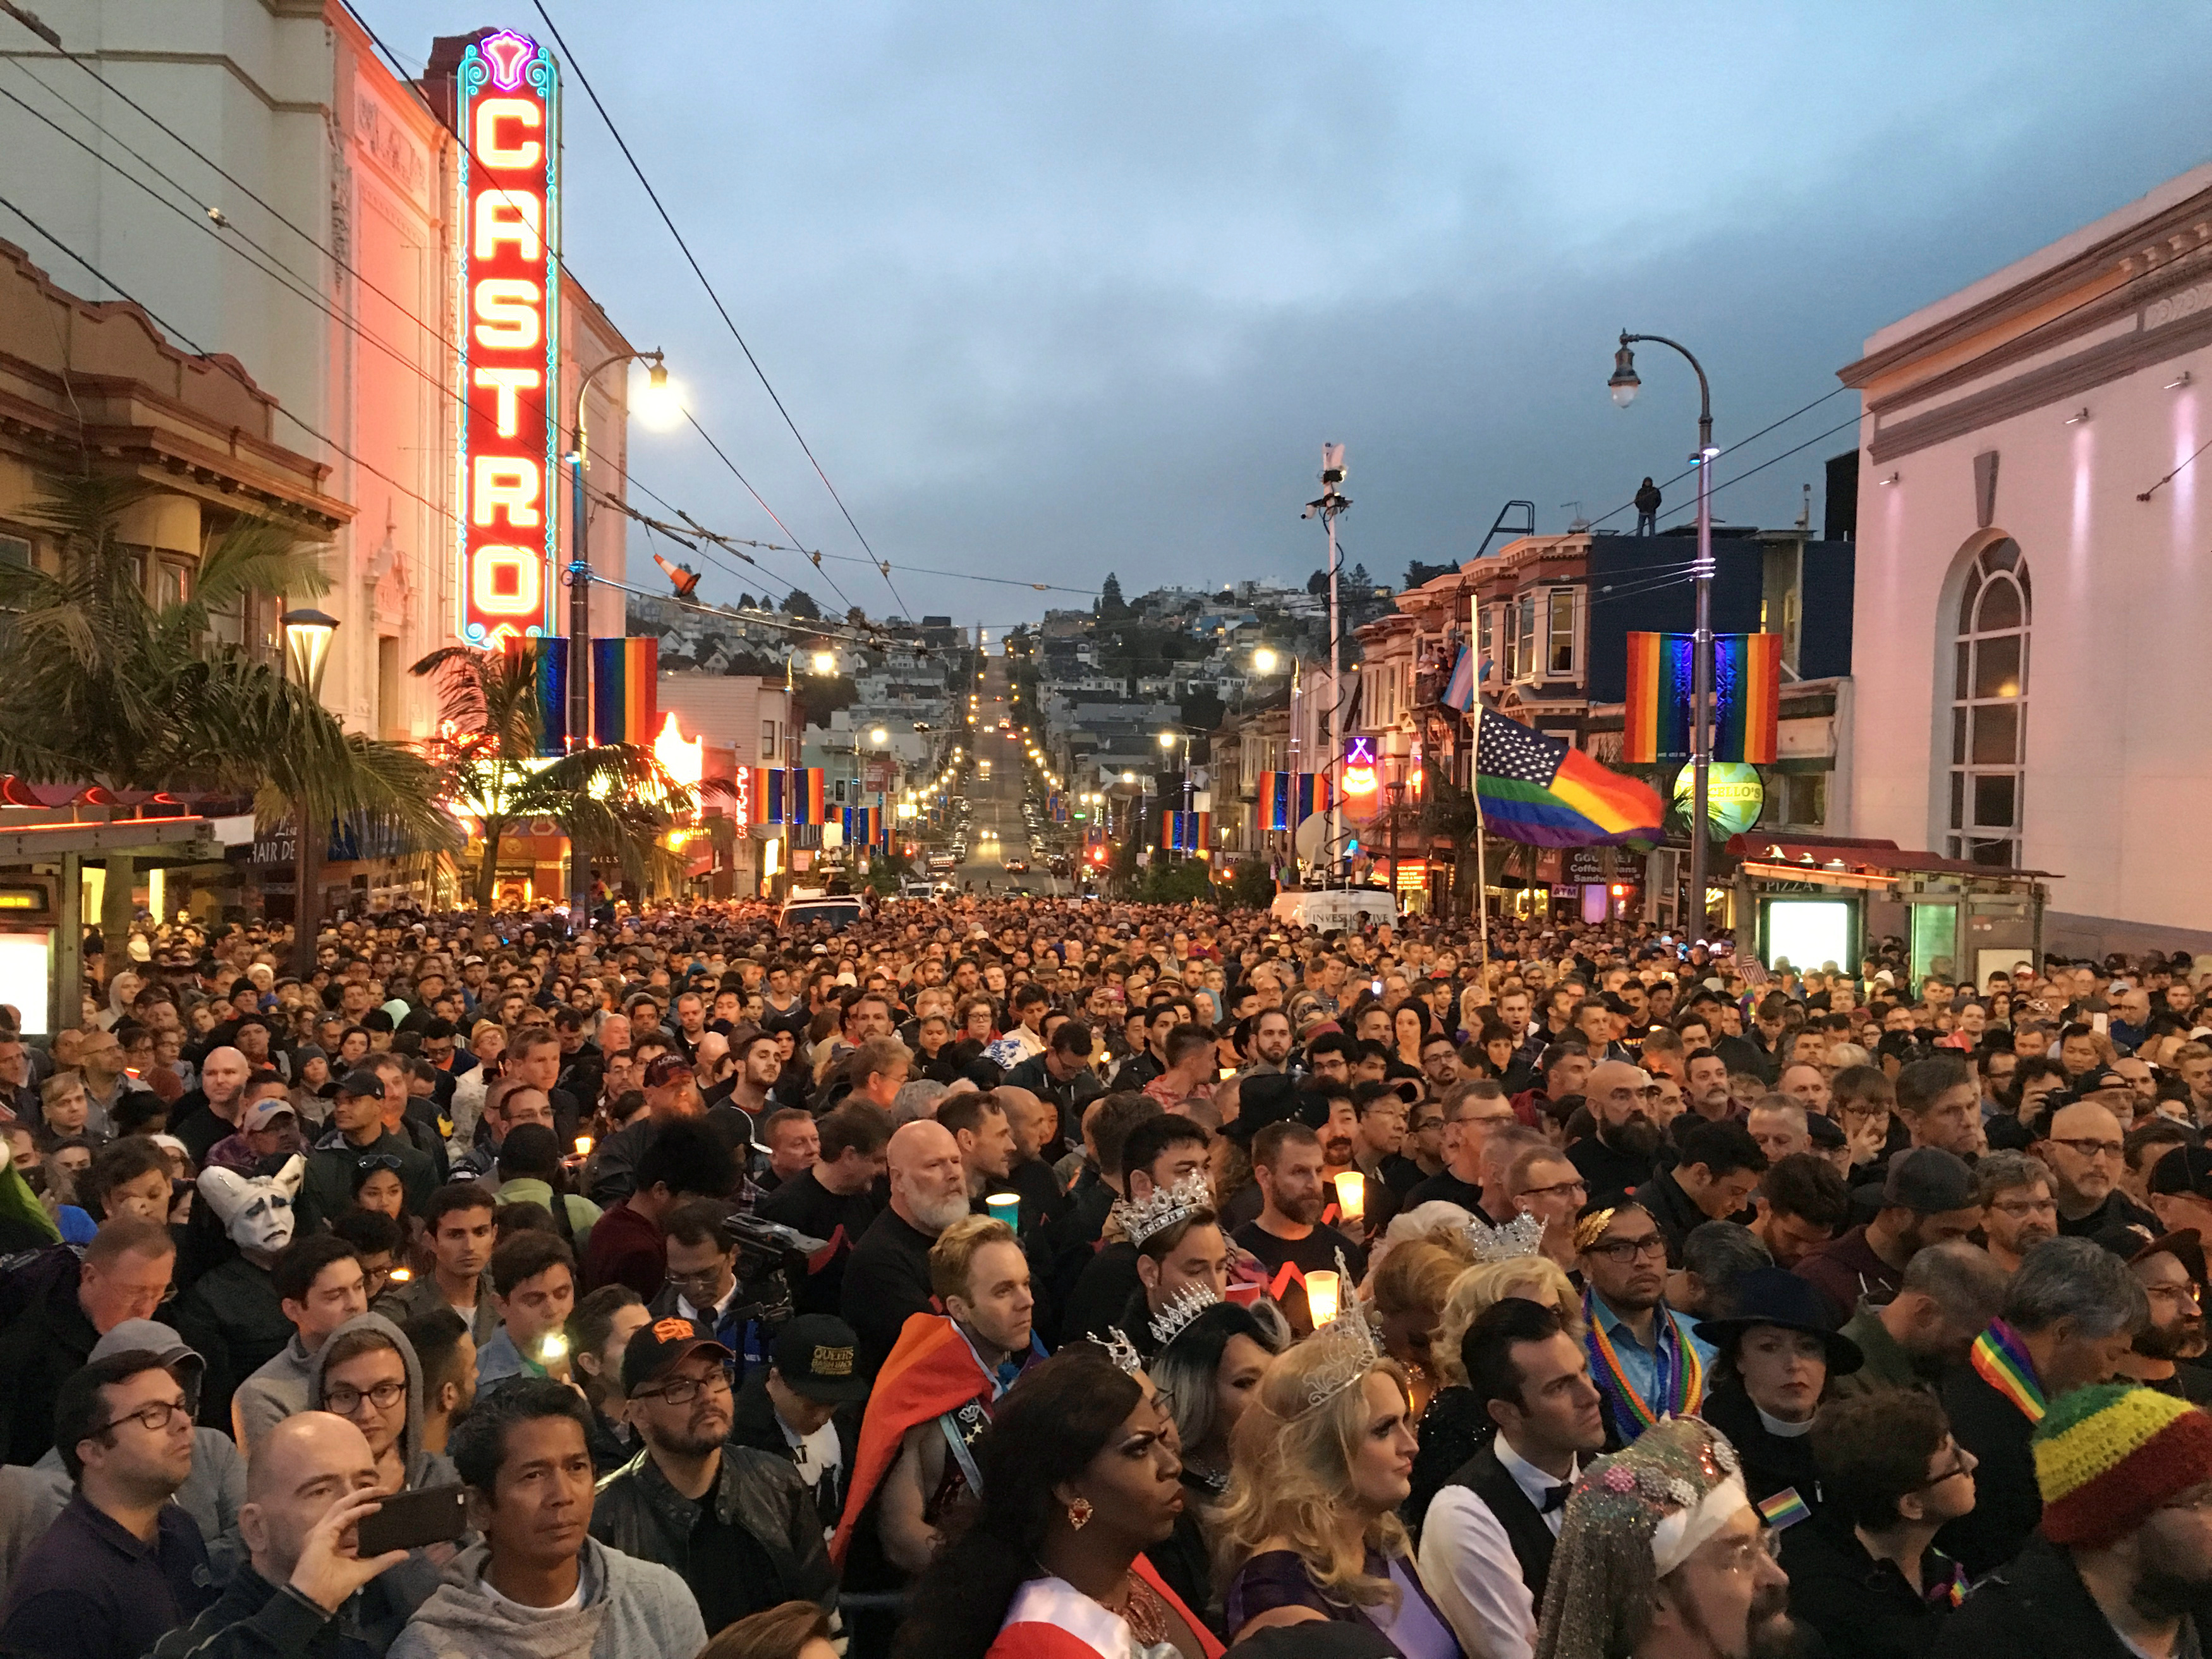 People gather in the Castro District for a vigil for the victims of the Orlando shooting at a gay nightclub, in San Francisco